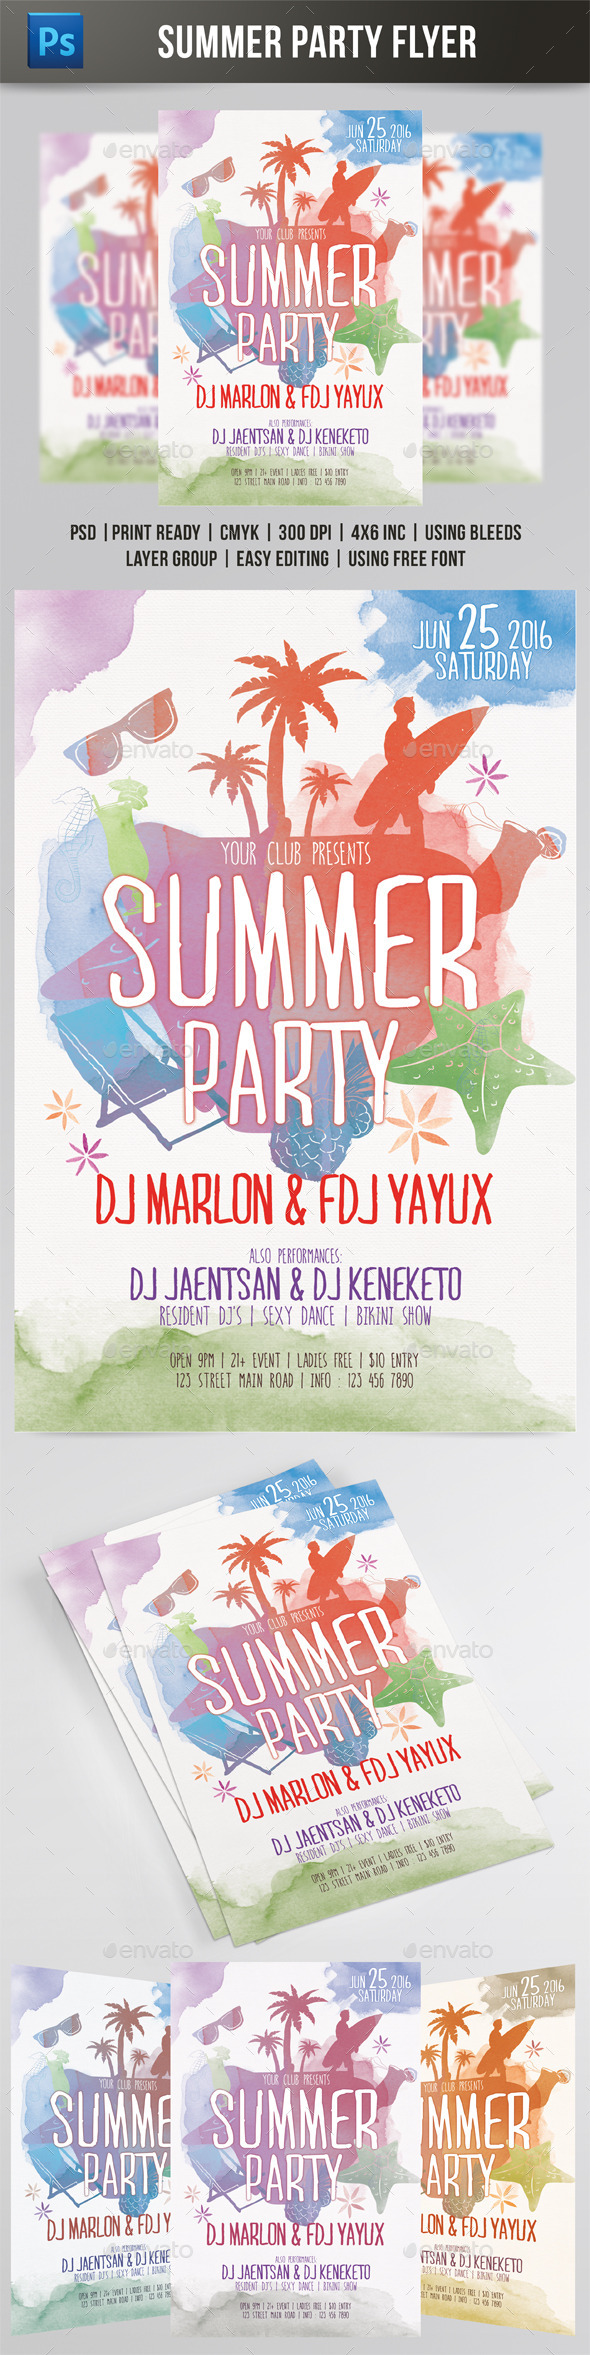 Summer Party Watercolor Style Flyer - Events Flyers